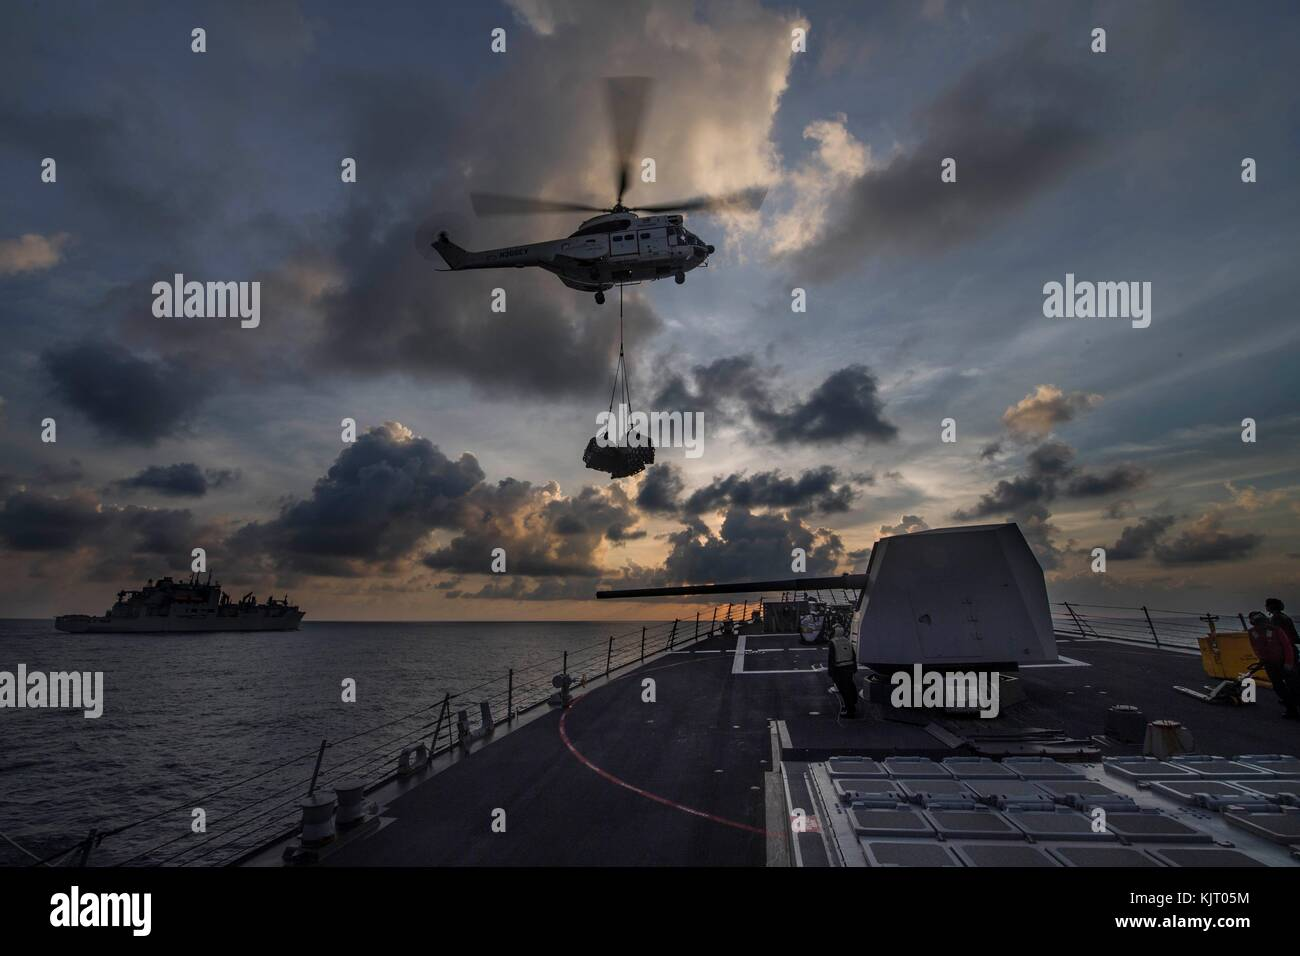 A U.S. Navy SA-330 Puma helicopter delivers cargo to the U.S. Navy Arleigh Burke-class guided-missile destroyer - Stock Image